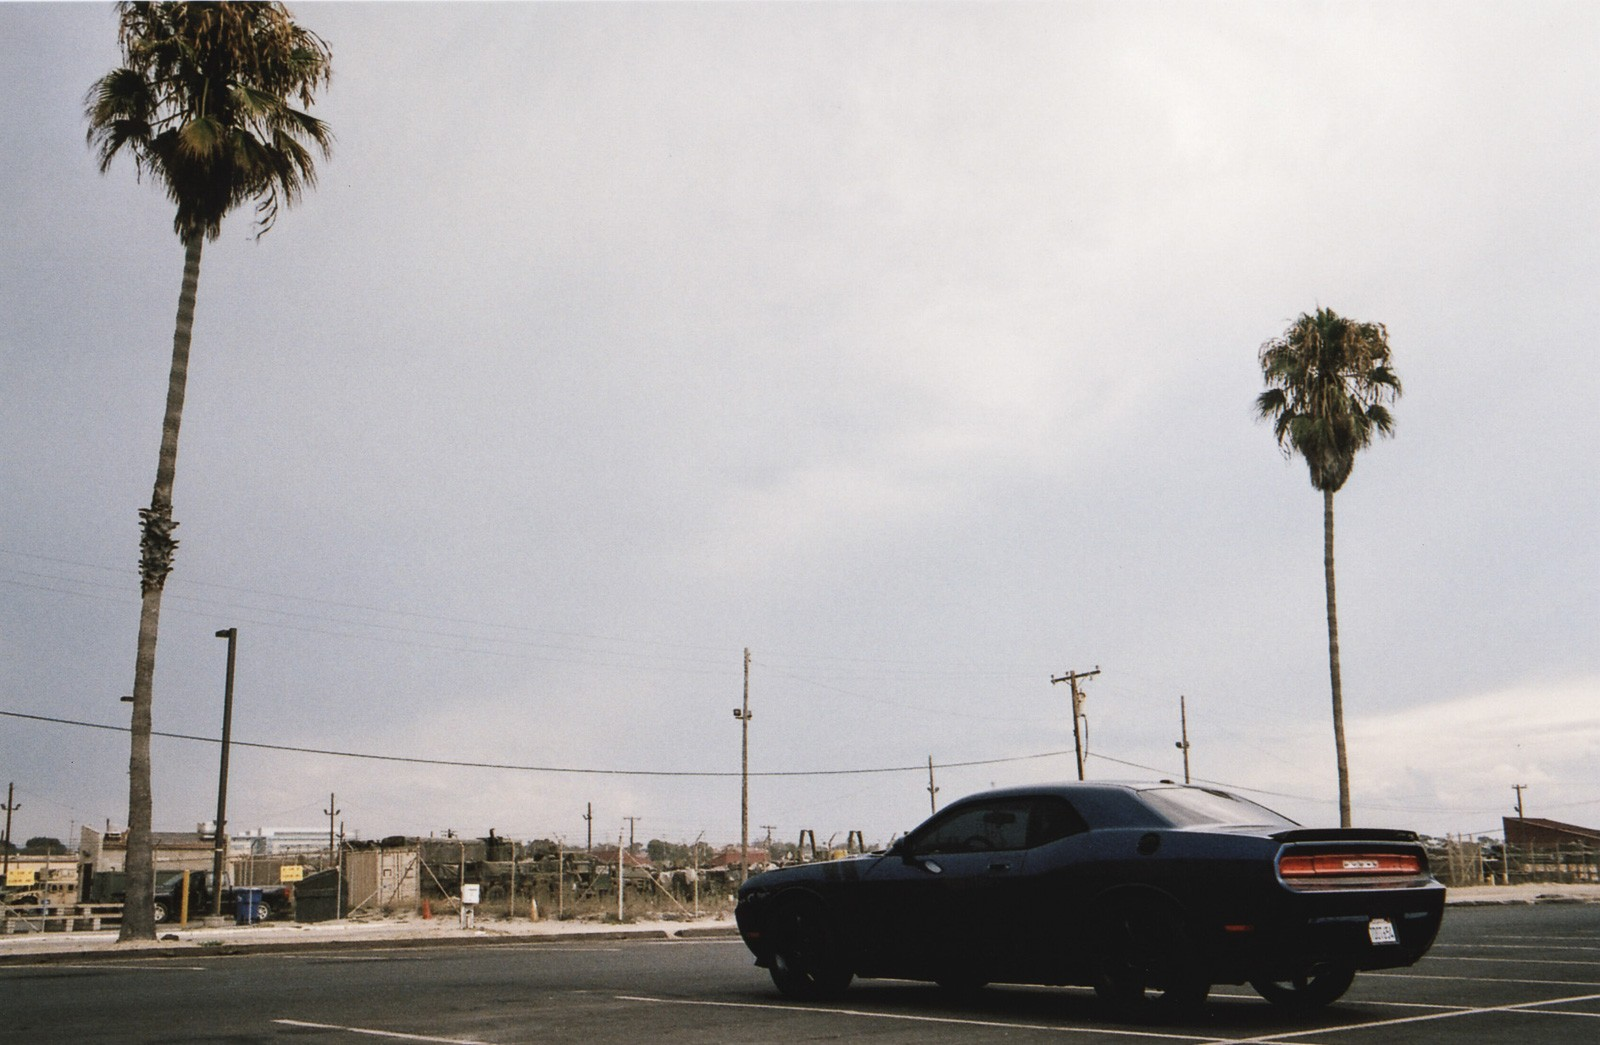 dodge charger on parking lot with palm trees